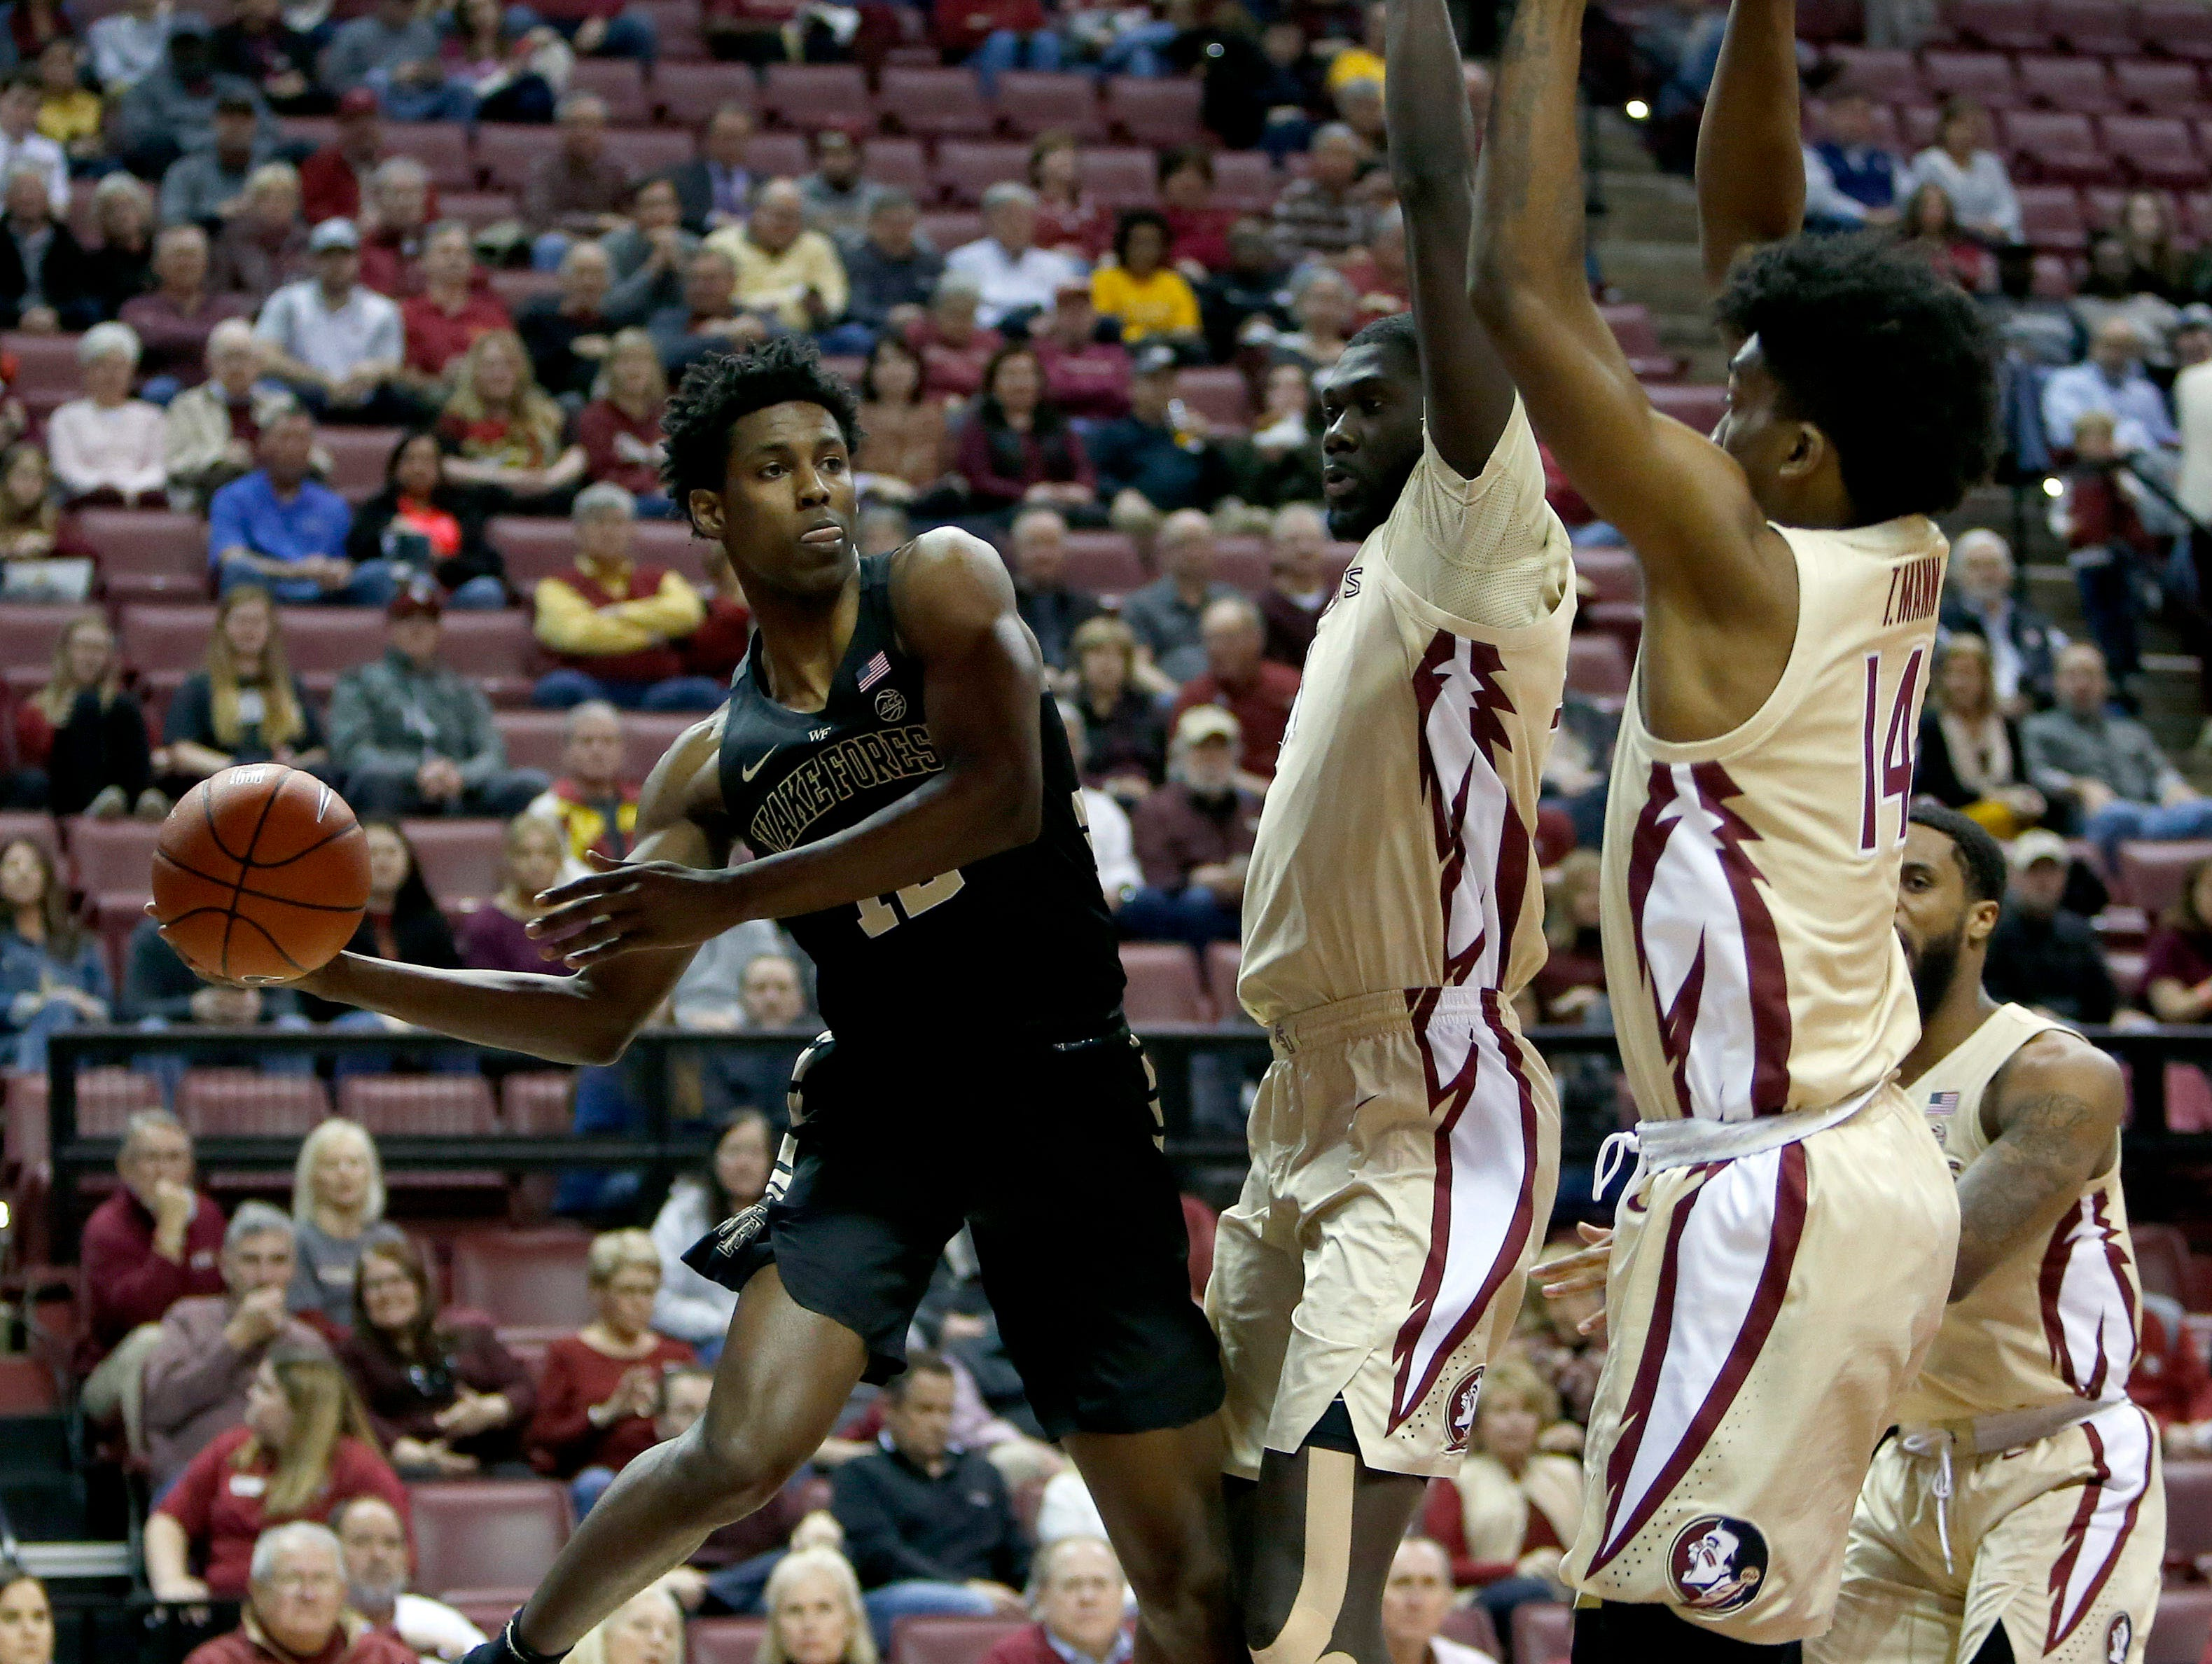 Feb 13, 2019; Tallahassee, FL, USA; Wake Forest Demon Deacons forward Jaylen Hoard (10) attempts to save the ball against the Florida State Seminoles during the first half of action at Donald L. Tucker Center. Mandatory Credit: Glenn Beil-USA TODAY Sports